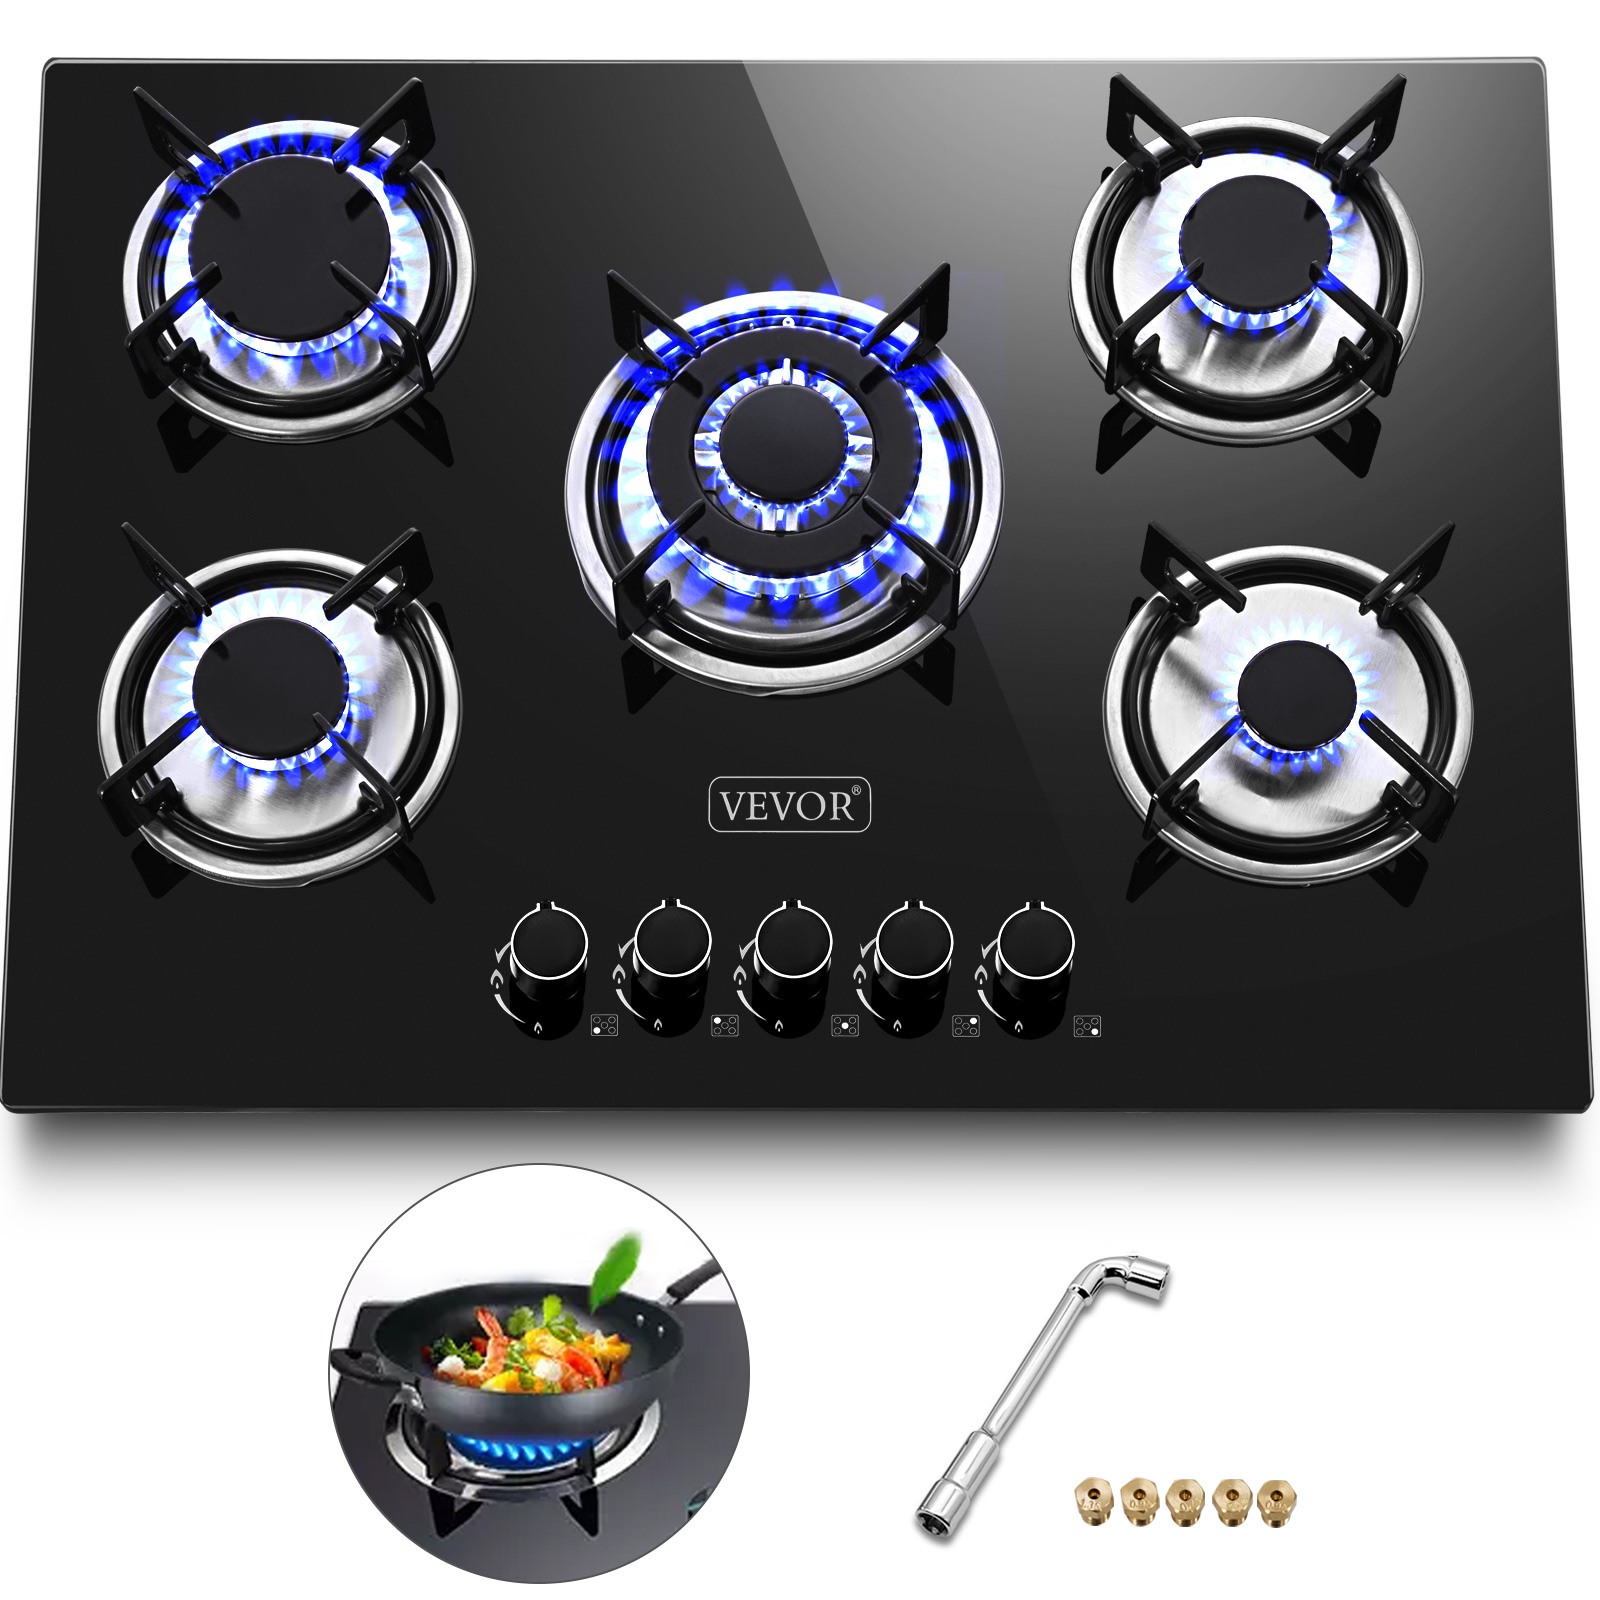 Details about Tempered Glass 5 Burners Stove Gas Cooktop 30inch Fsat clean  For Apartment